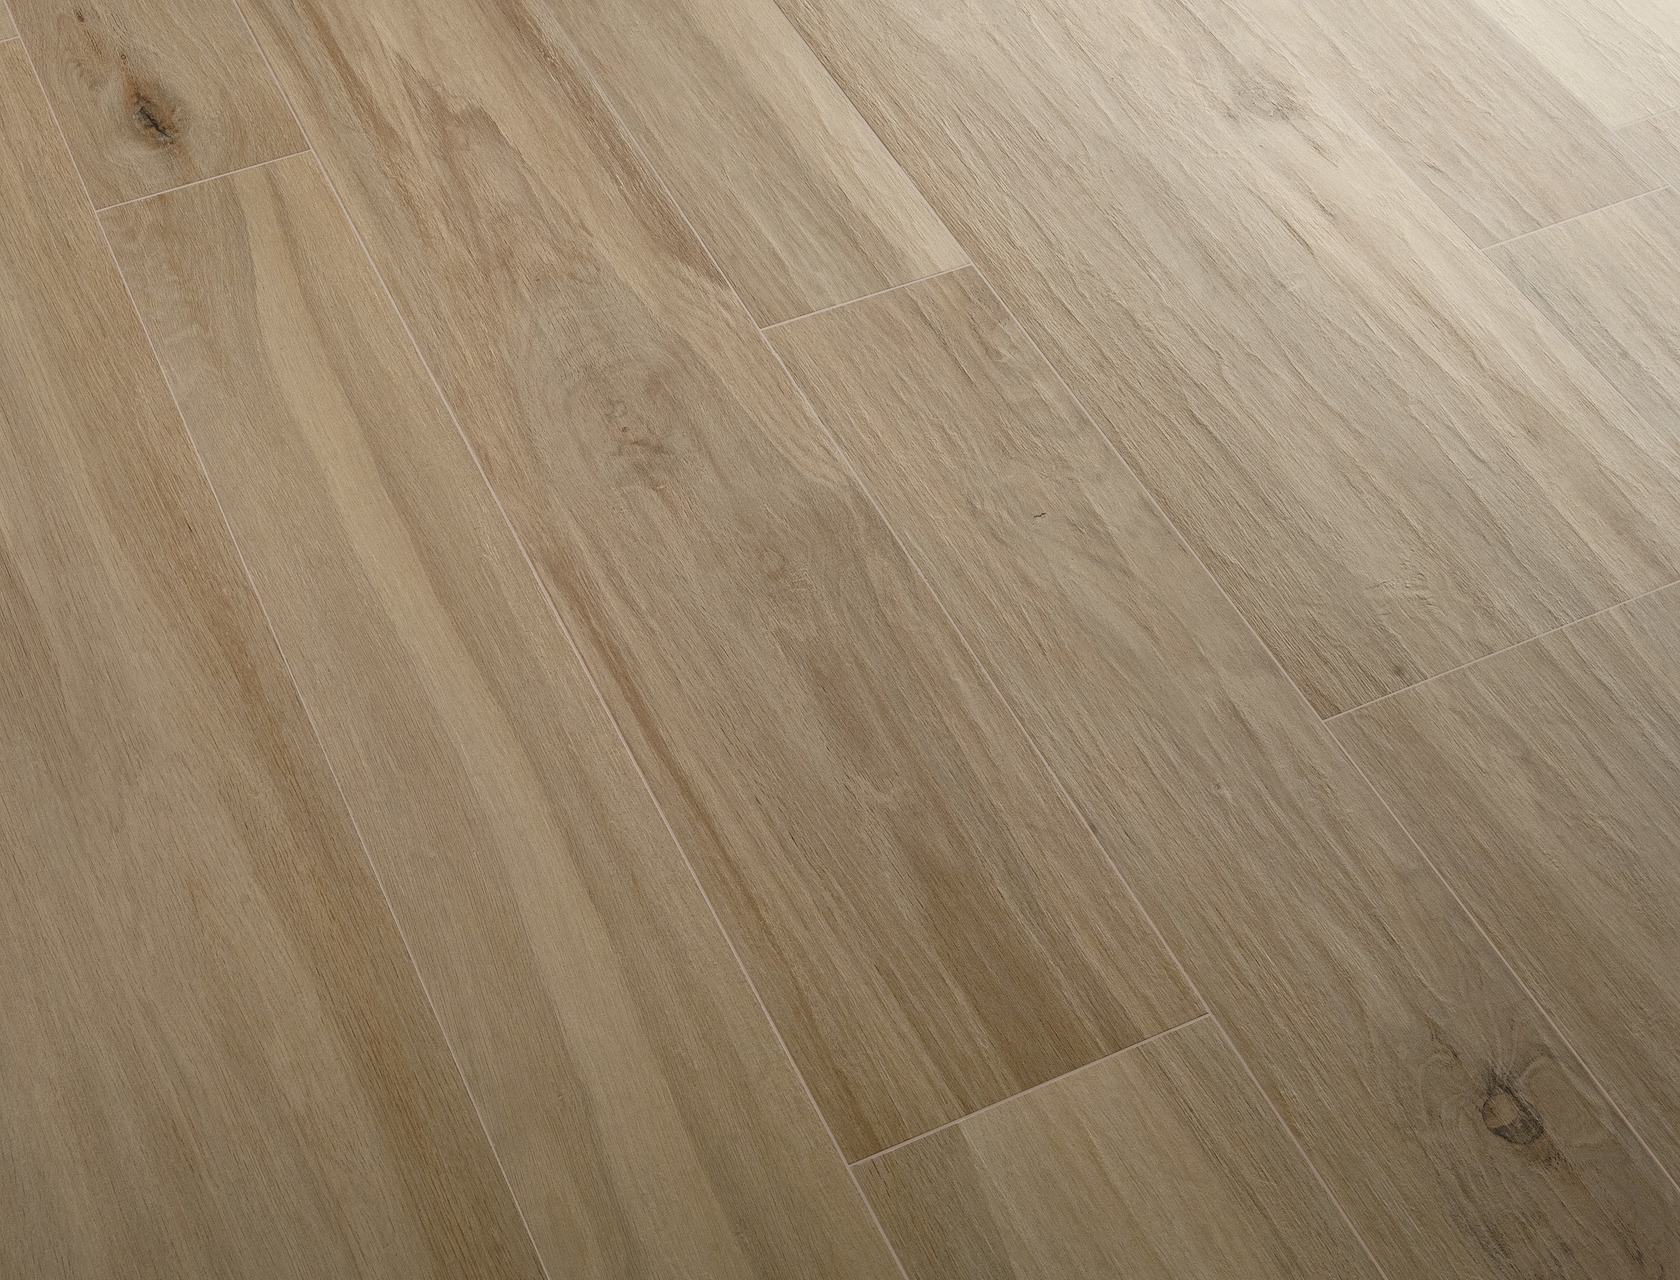 Wood Effect Porcelain Tiles Noce Floor And Wall Coverings